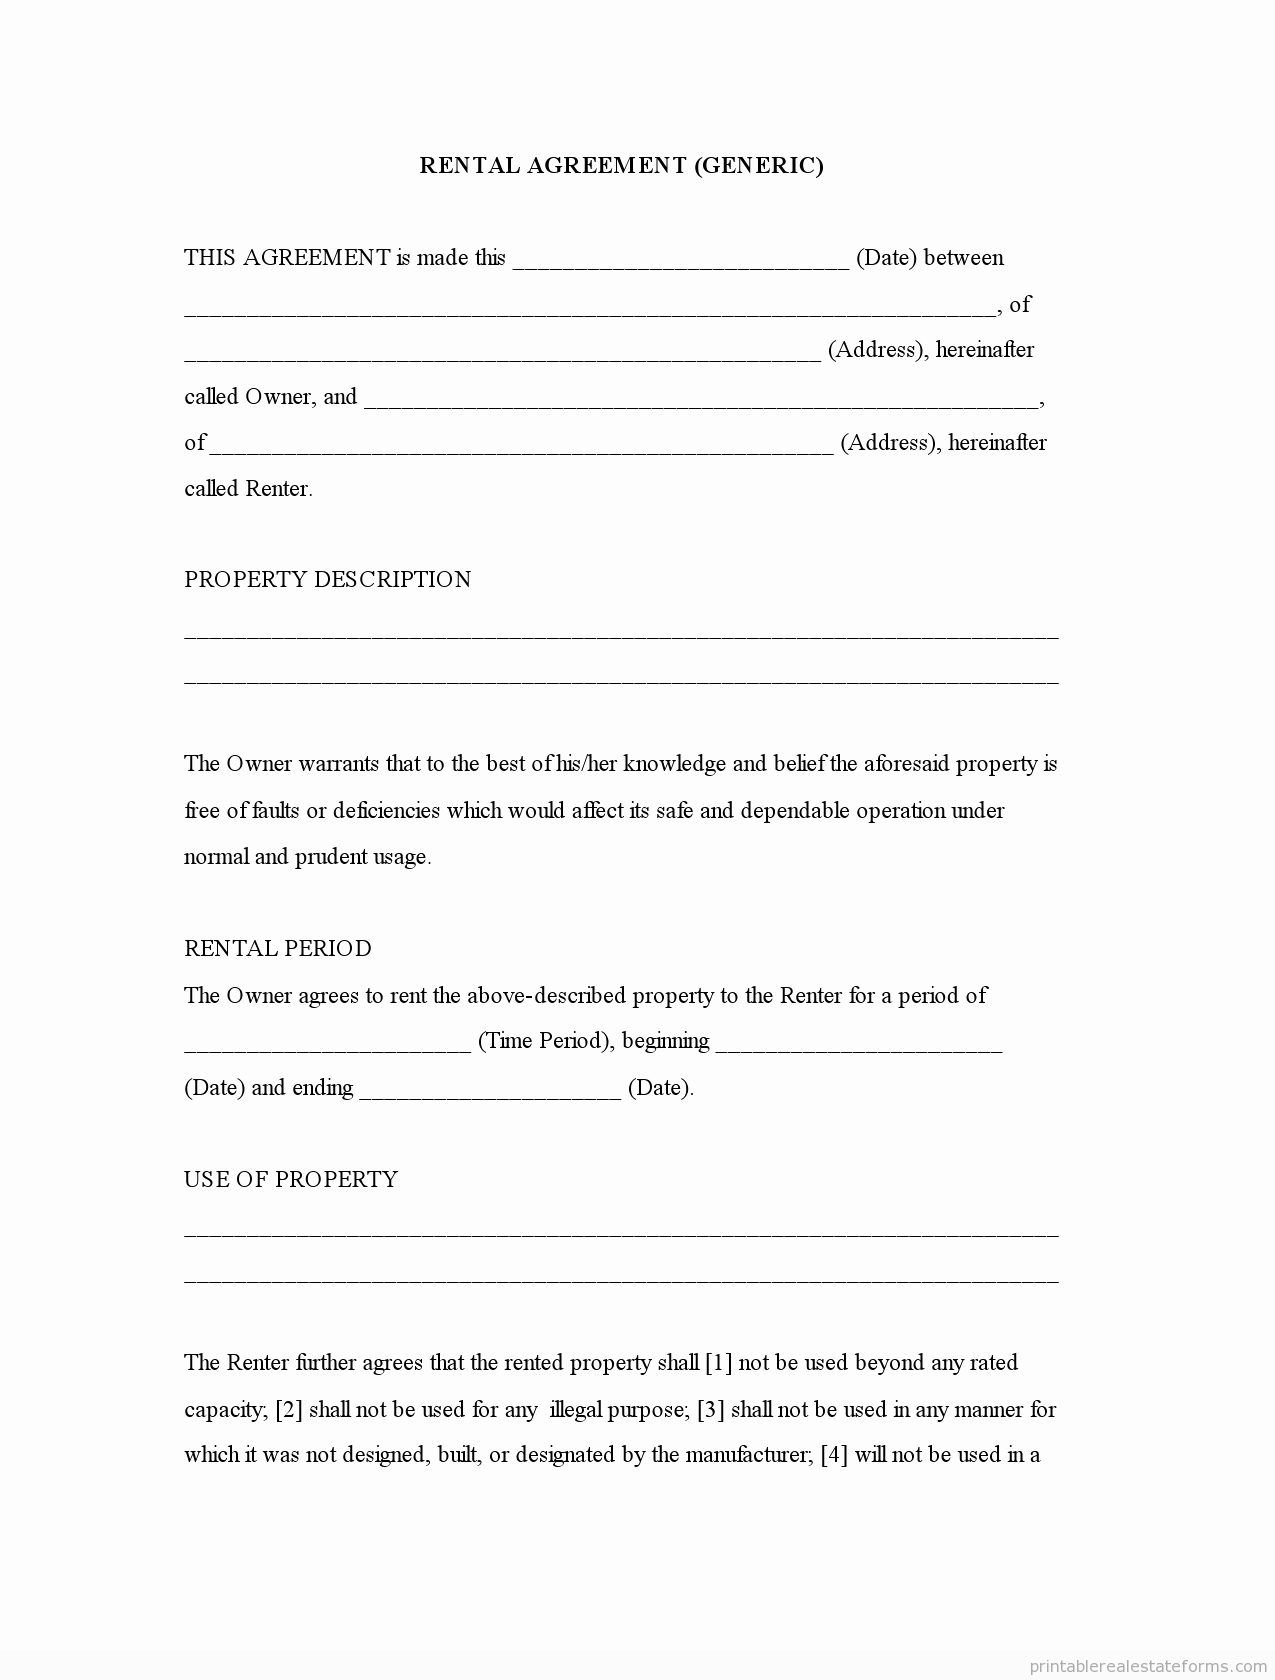 Generic Template Rental Agreement forms Free Printable